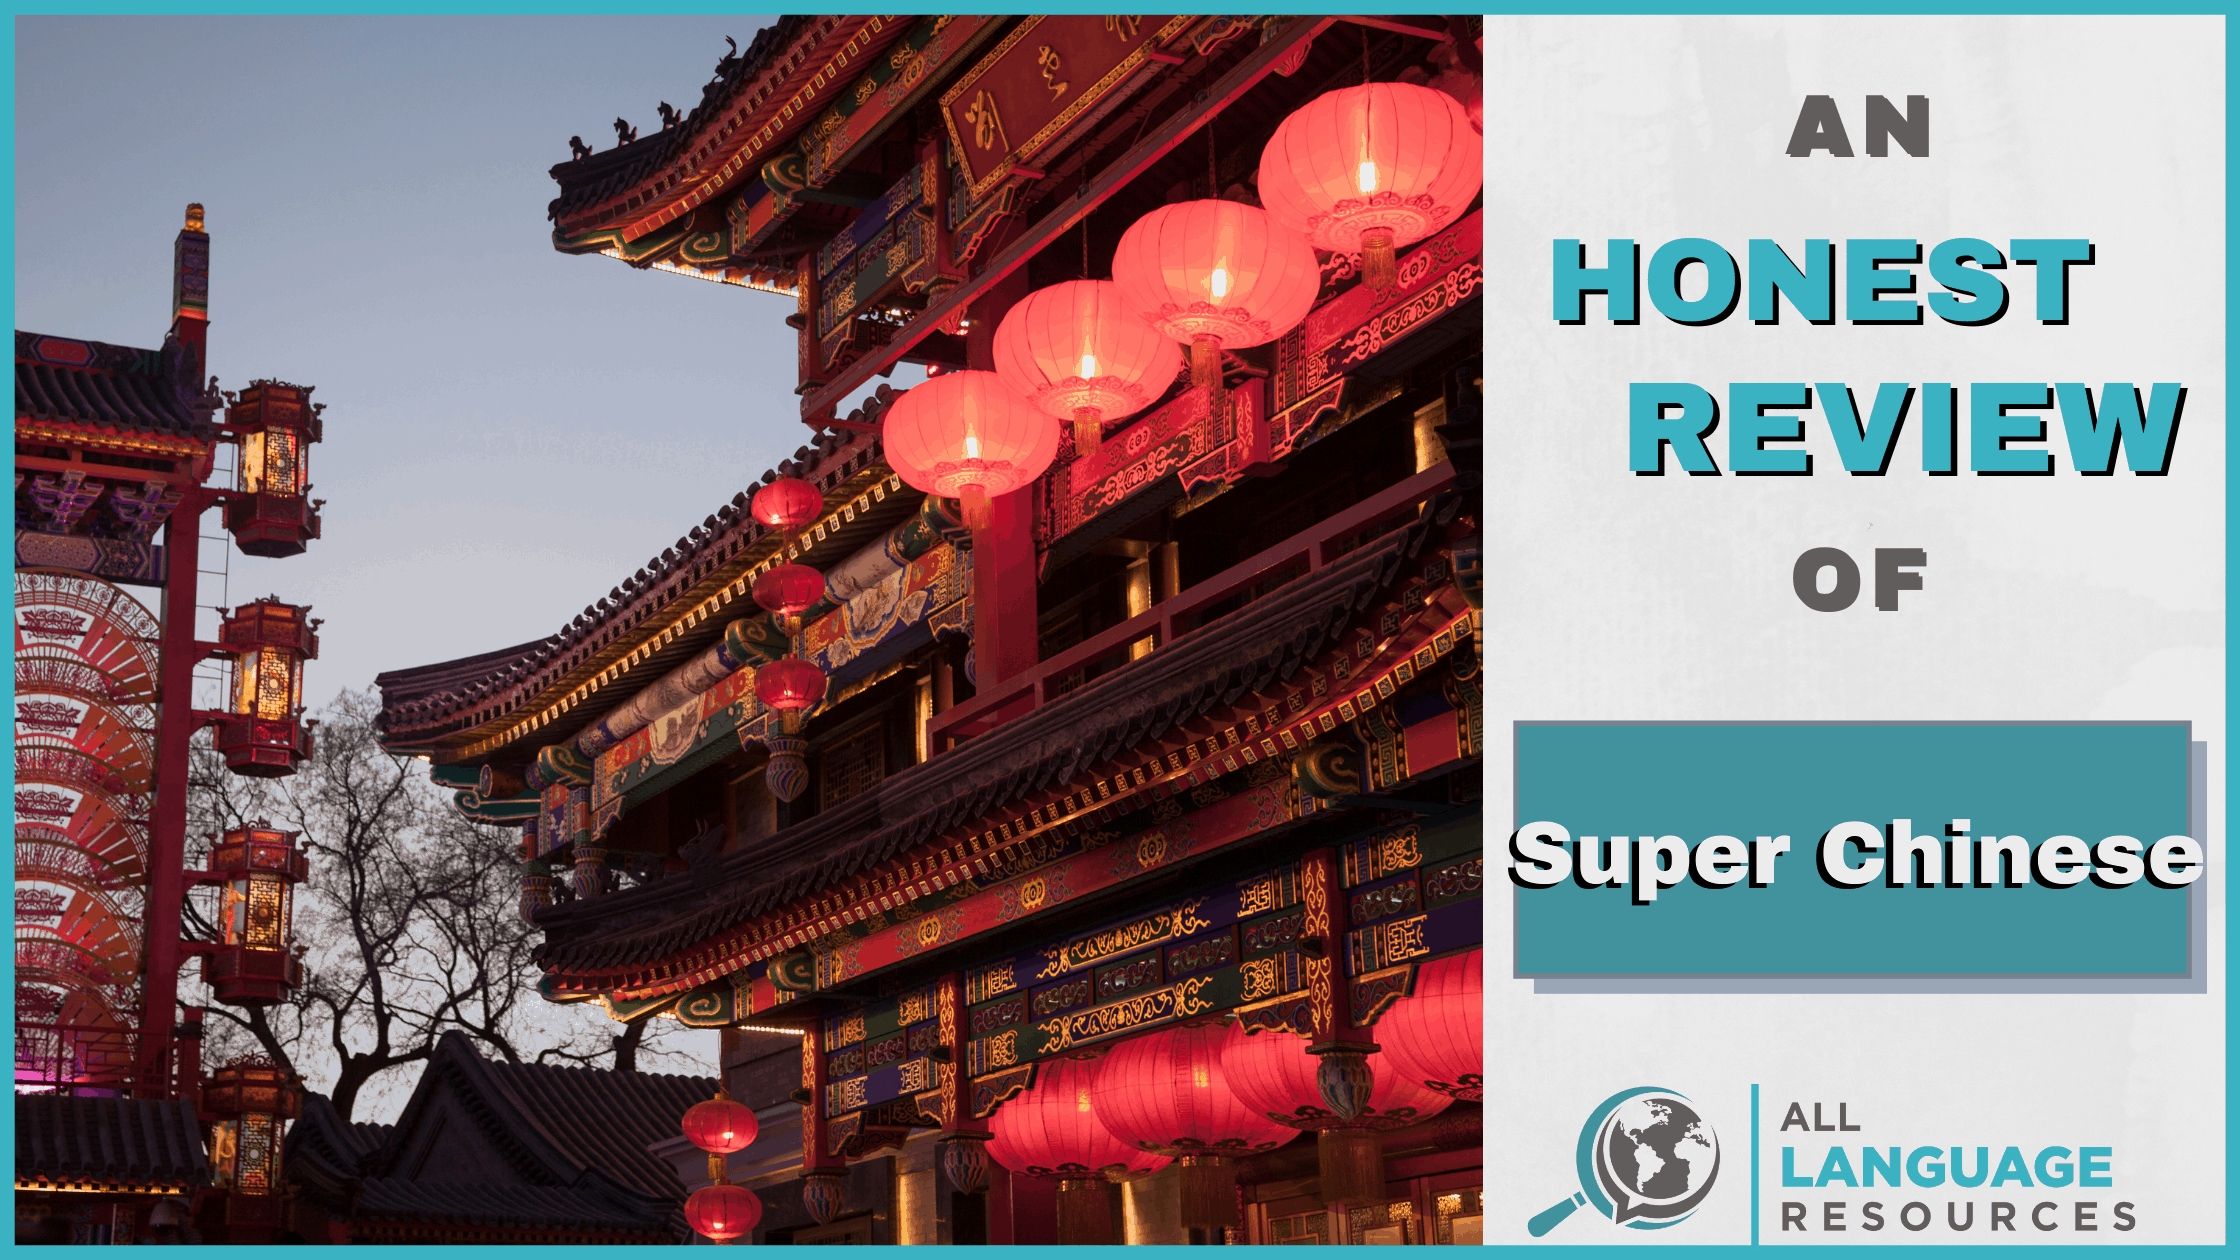 An Honest Review of Super Chinese With Image of Chinese Architecture